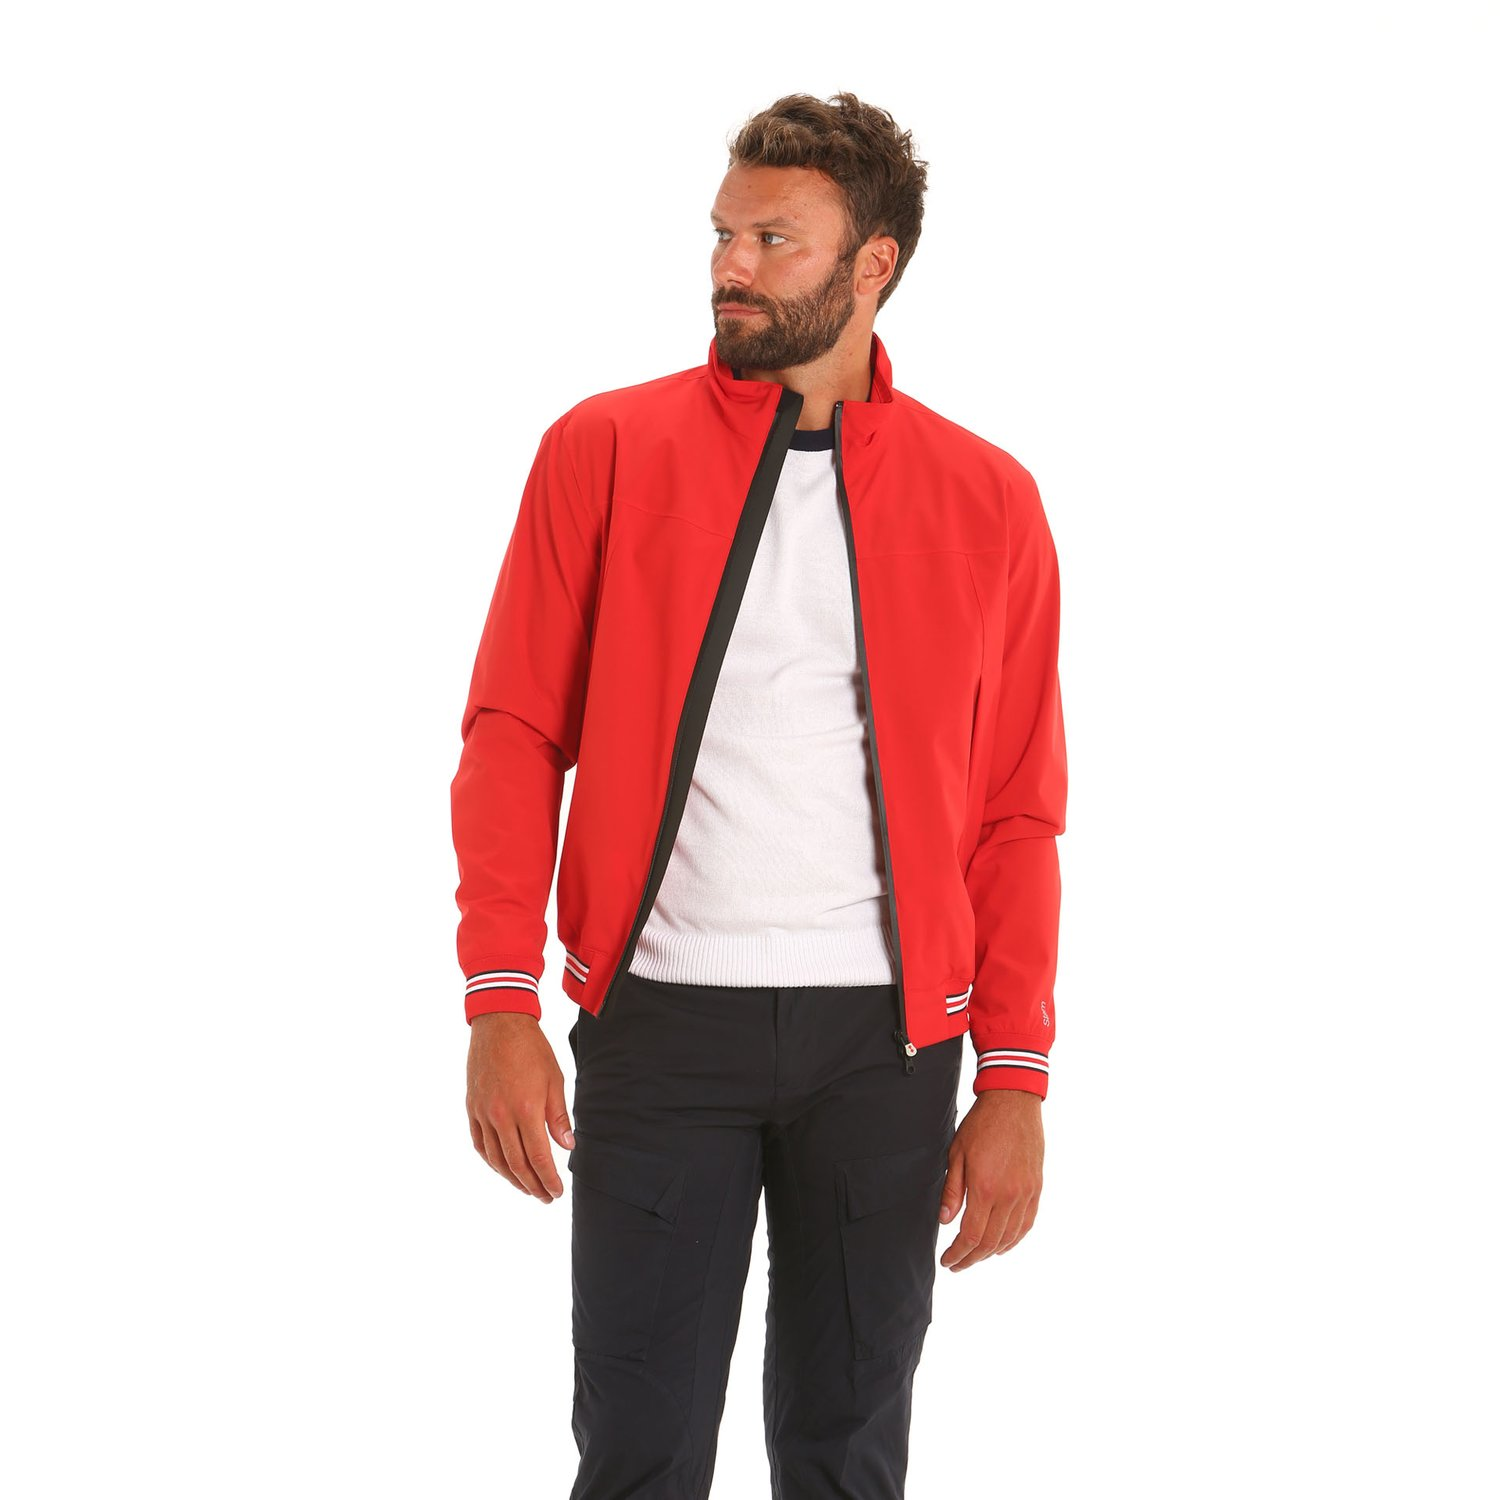 E08 waterproof, breathable, and windproof men's jacket - Slam Red